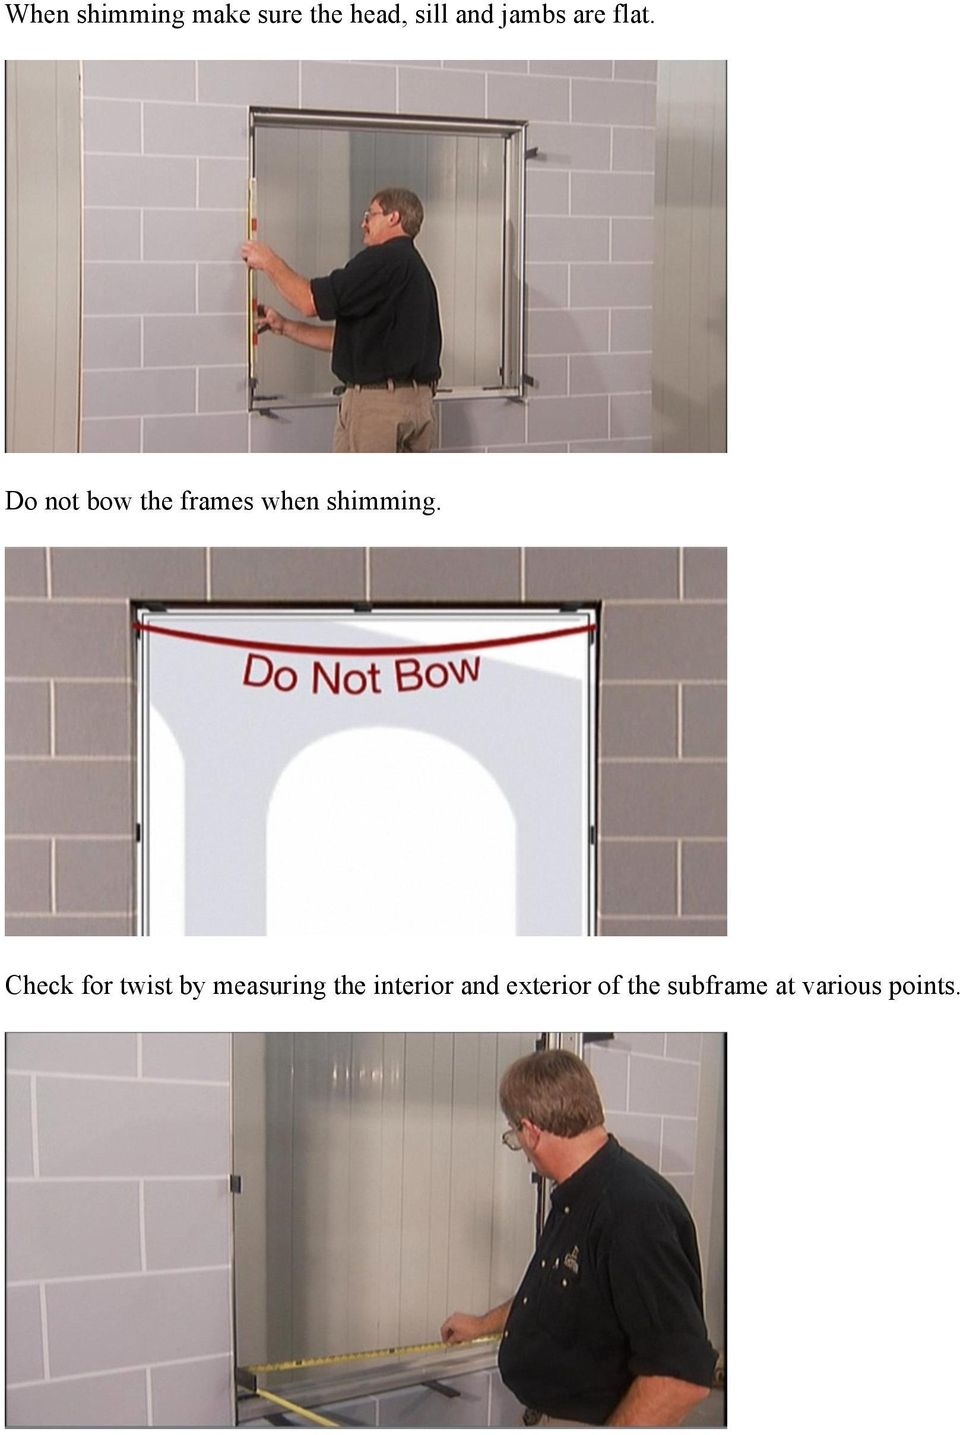 Do not bow the frames when shimming.